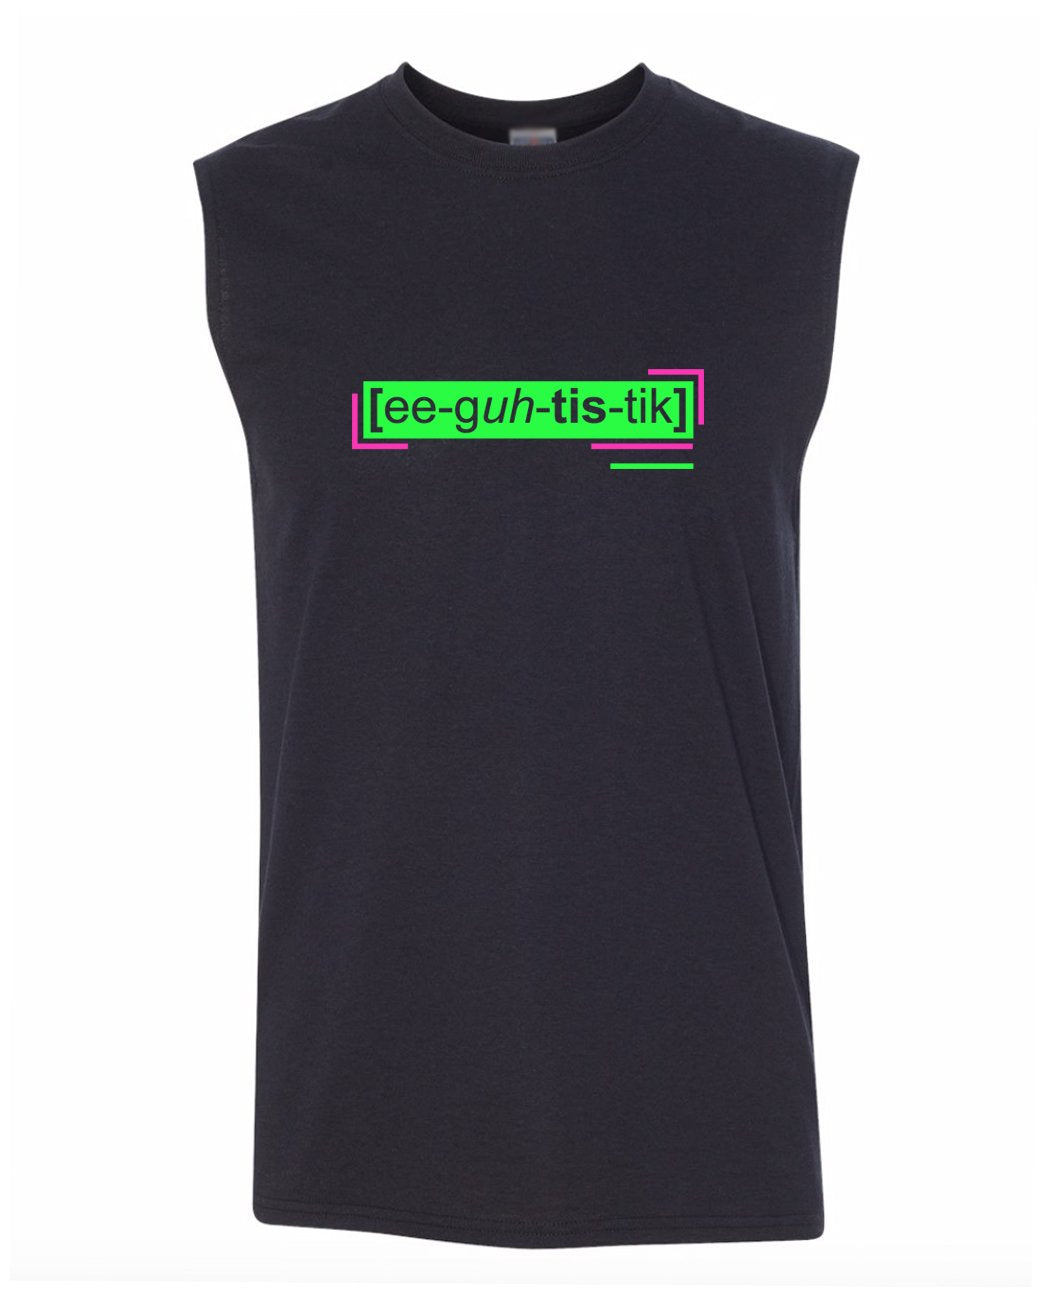 florescent green egotistic men's sleeveless tee tank top